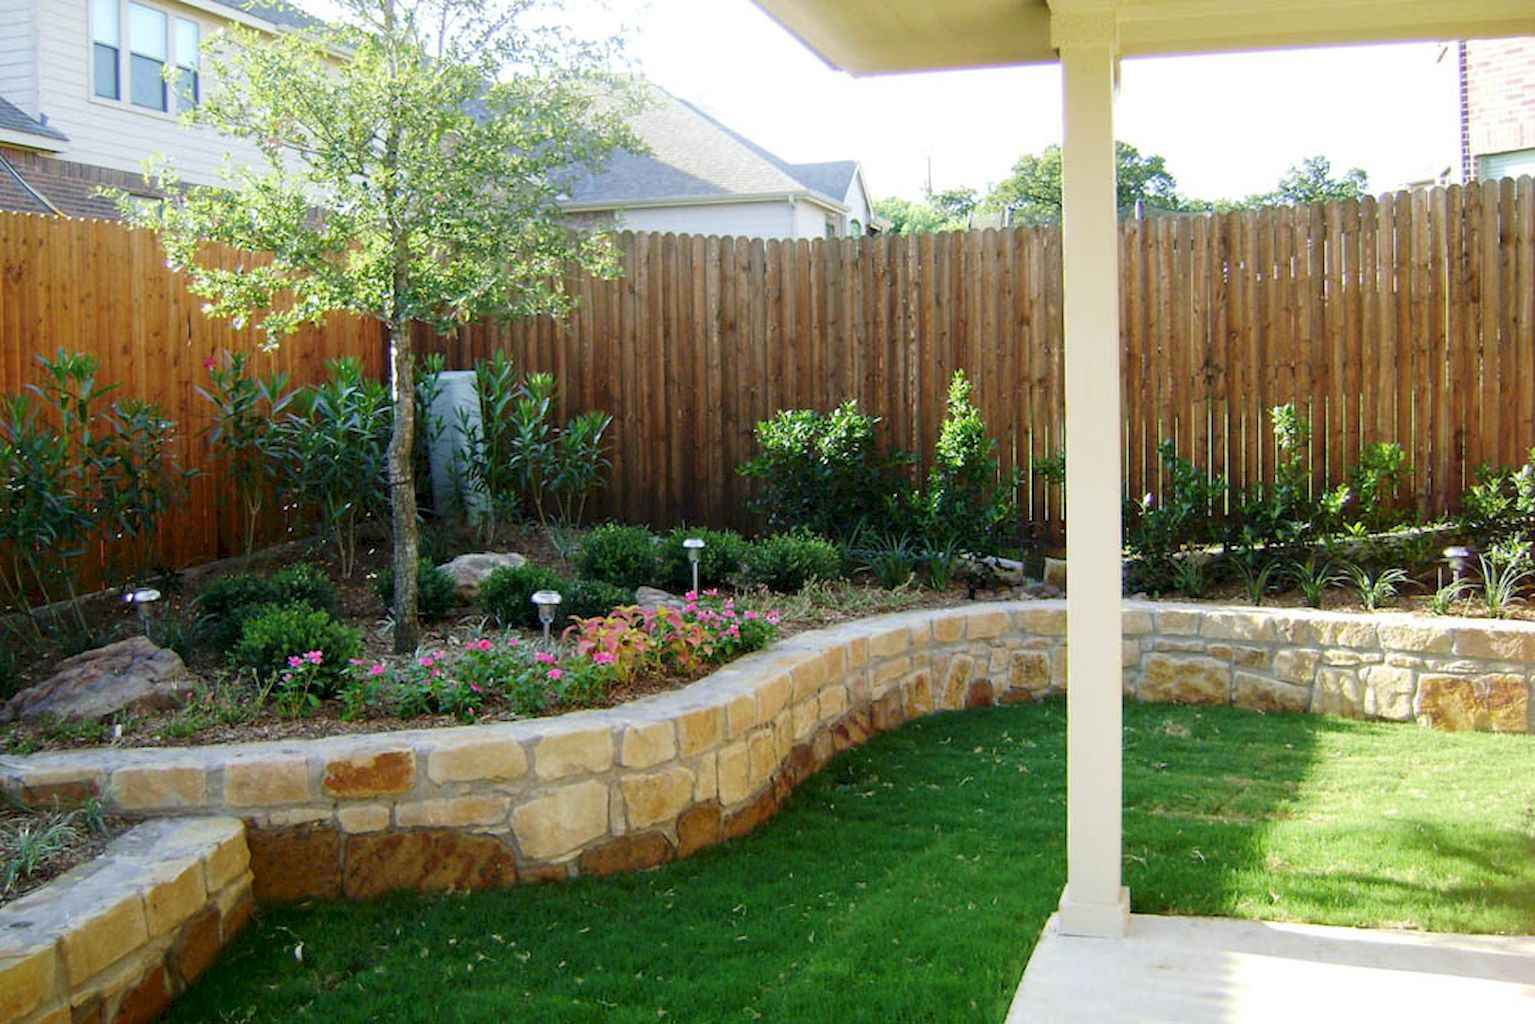 Small backyard landscaping ideas on a budget (16)